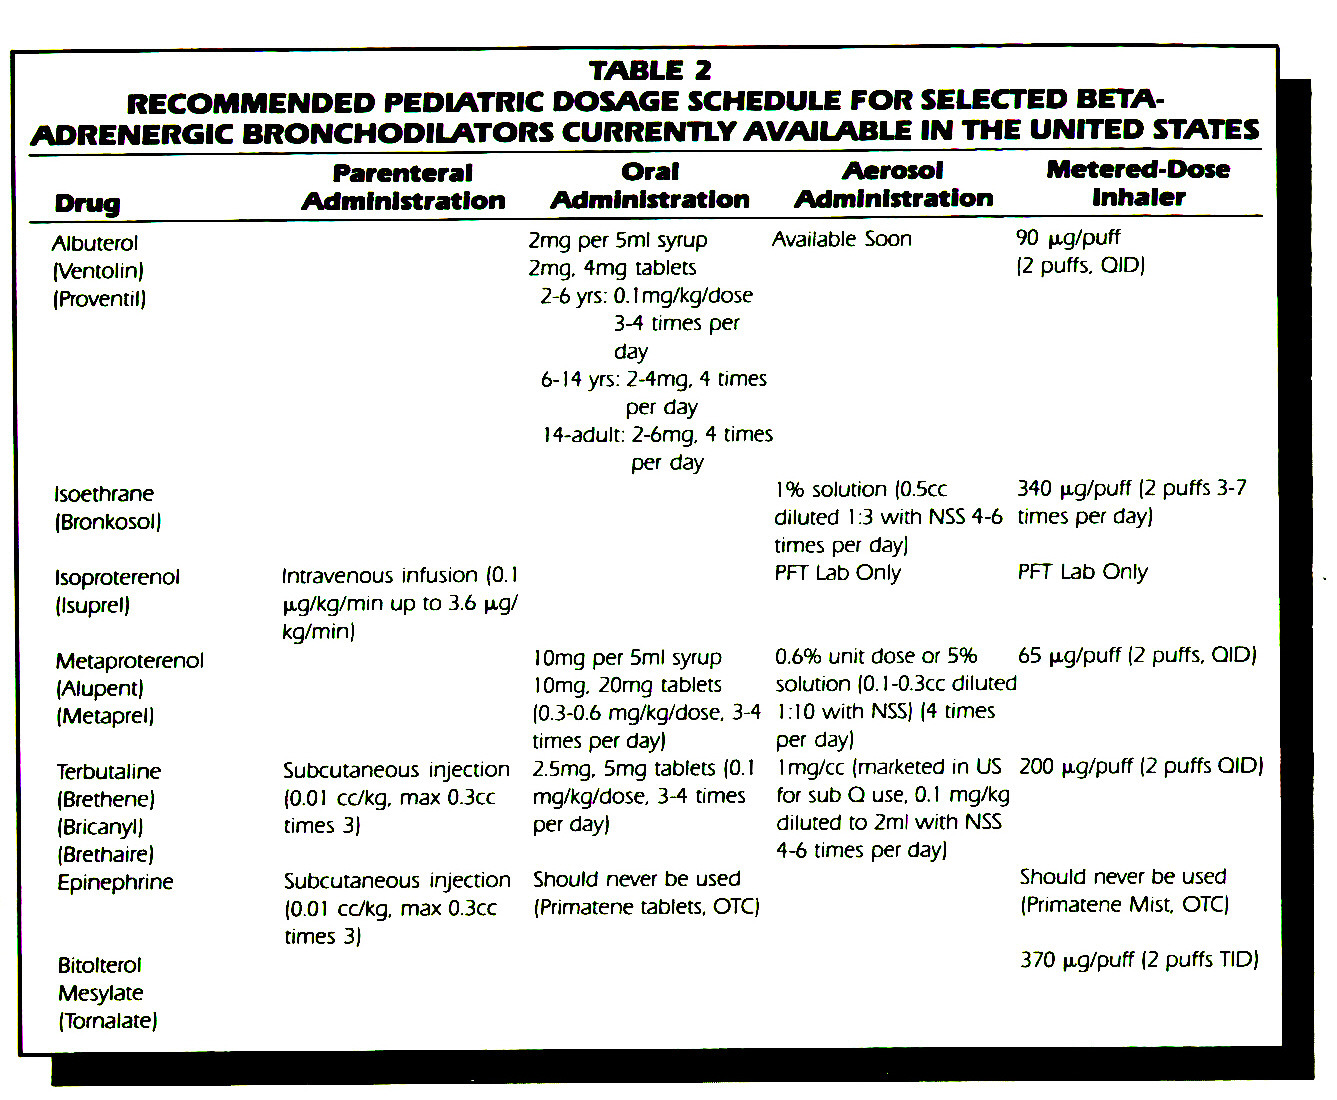 TABLE 2RECOMMENDED PEDIATRIC DOSAGE SCHEDULE FOR SELECTED BETAADRENERGIC BRONCHODILATORS CURRENTLYAVAILABLE IN THE UNITED STATES